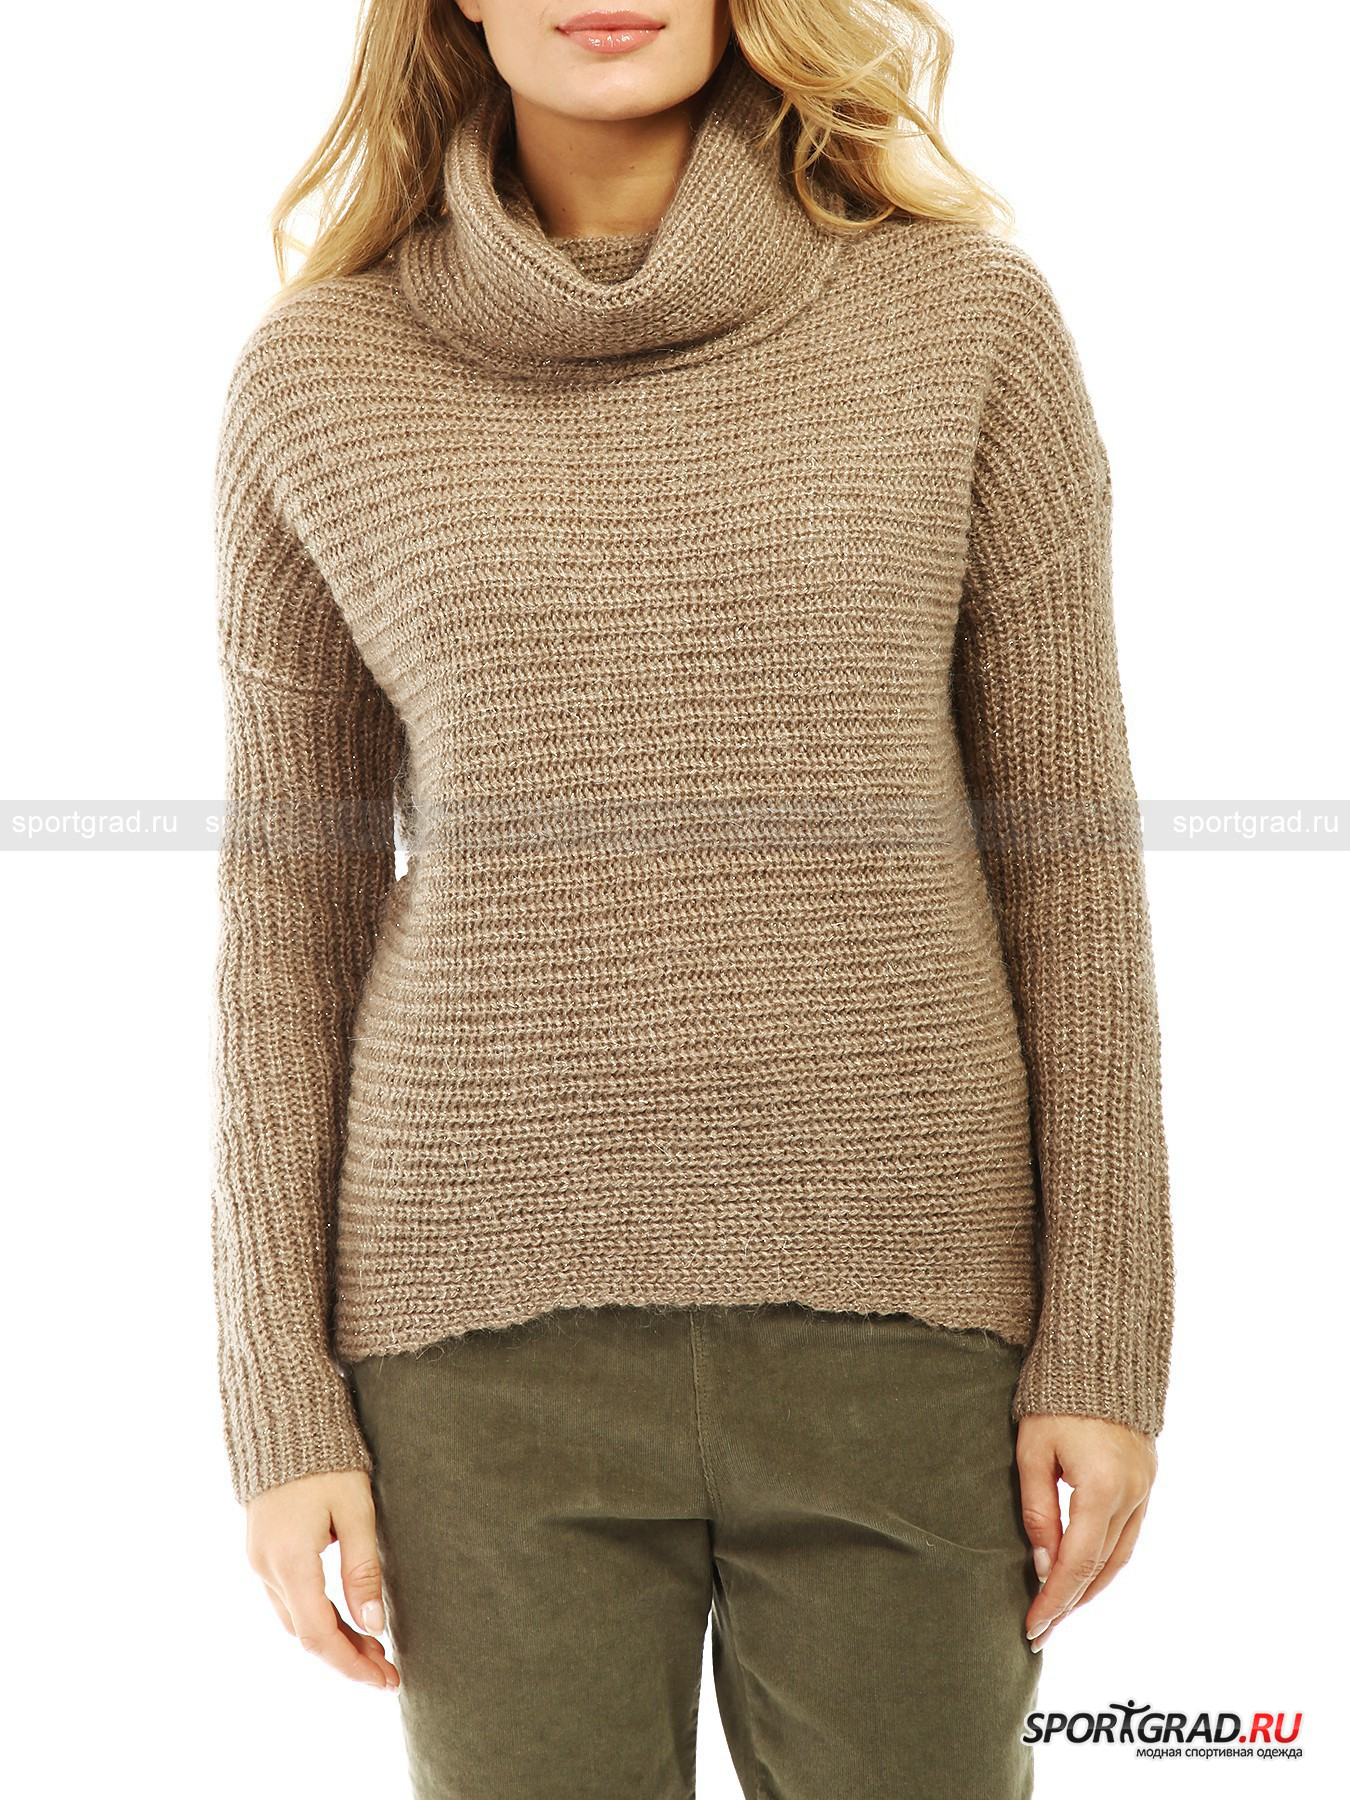 ������ ������� Knitted Sweater DEHA